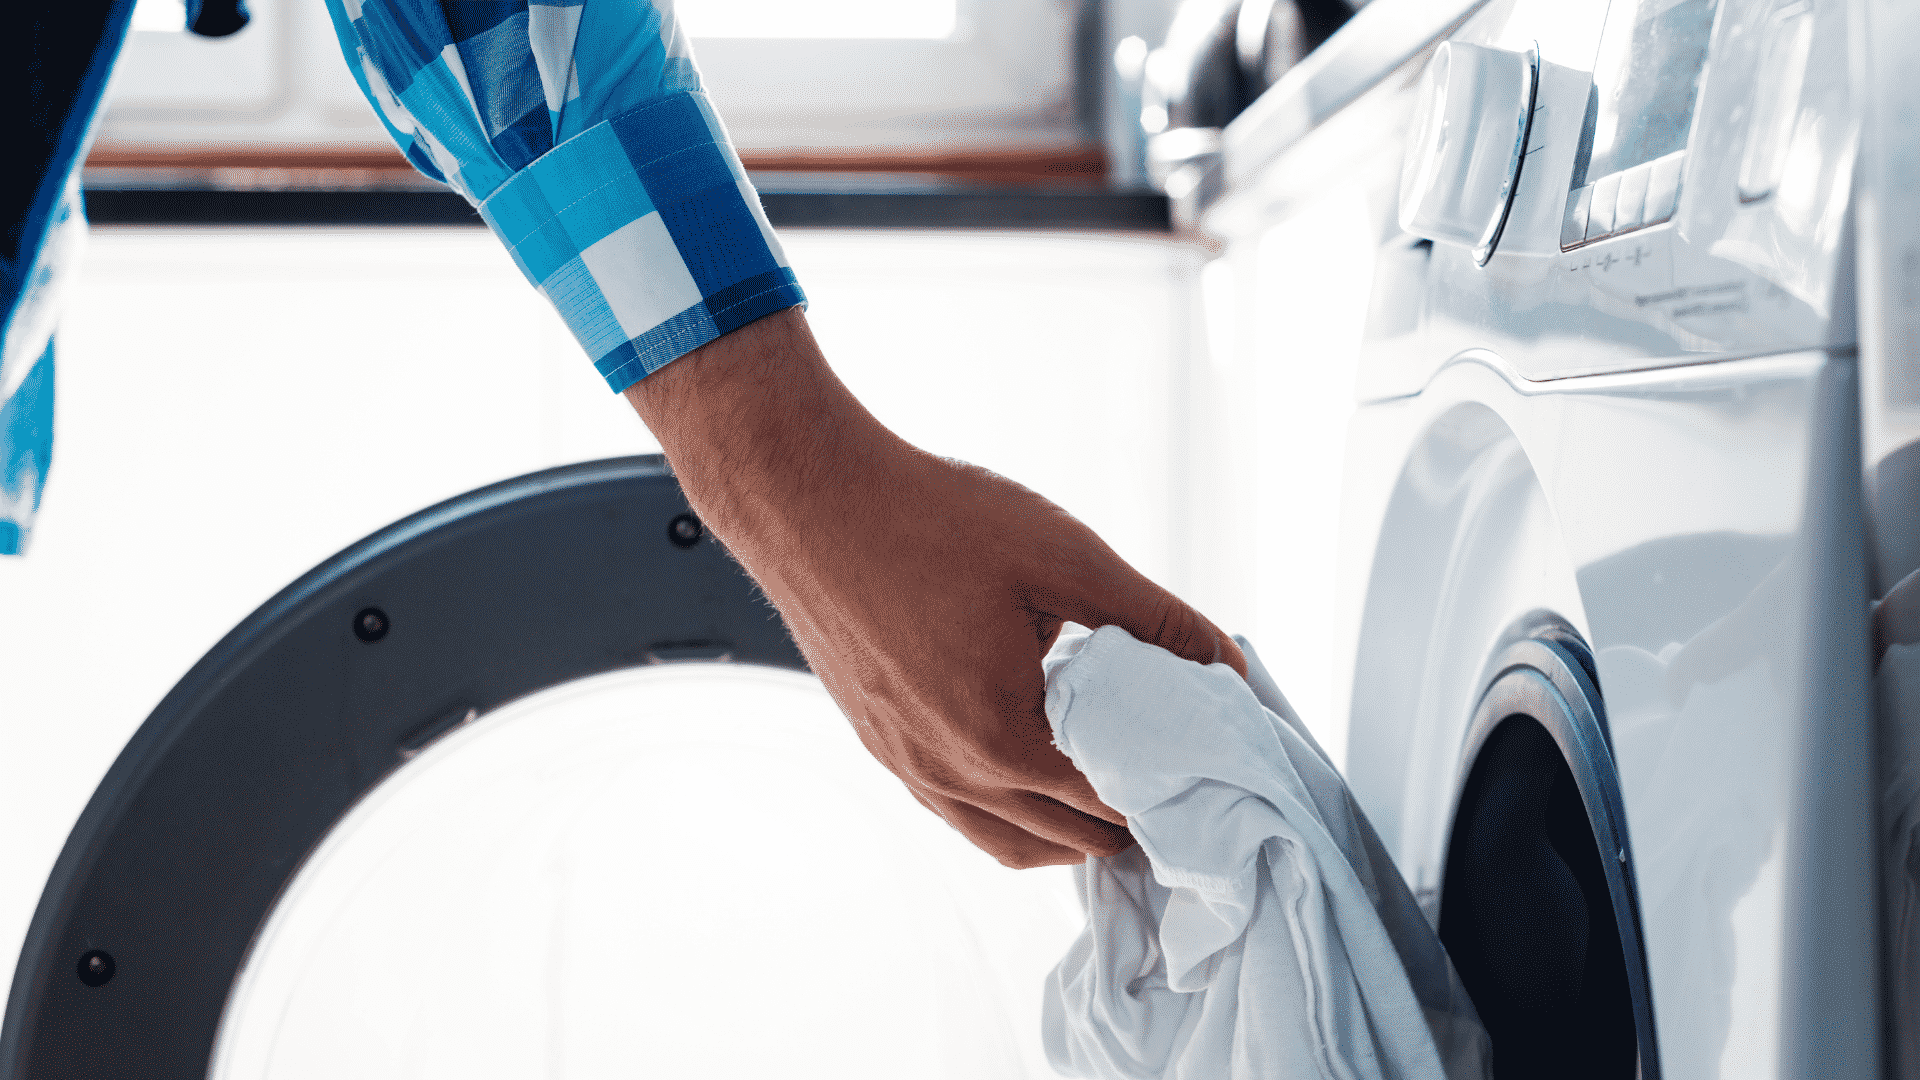 man puts clothes in dryer